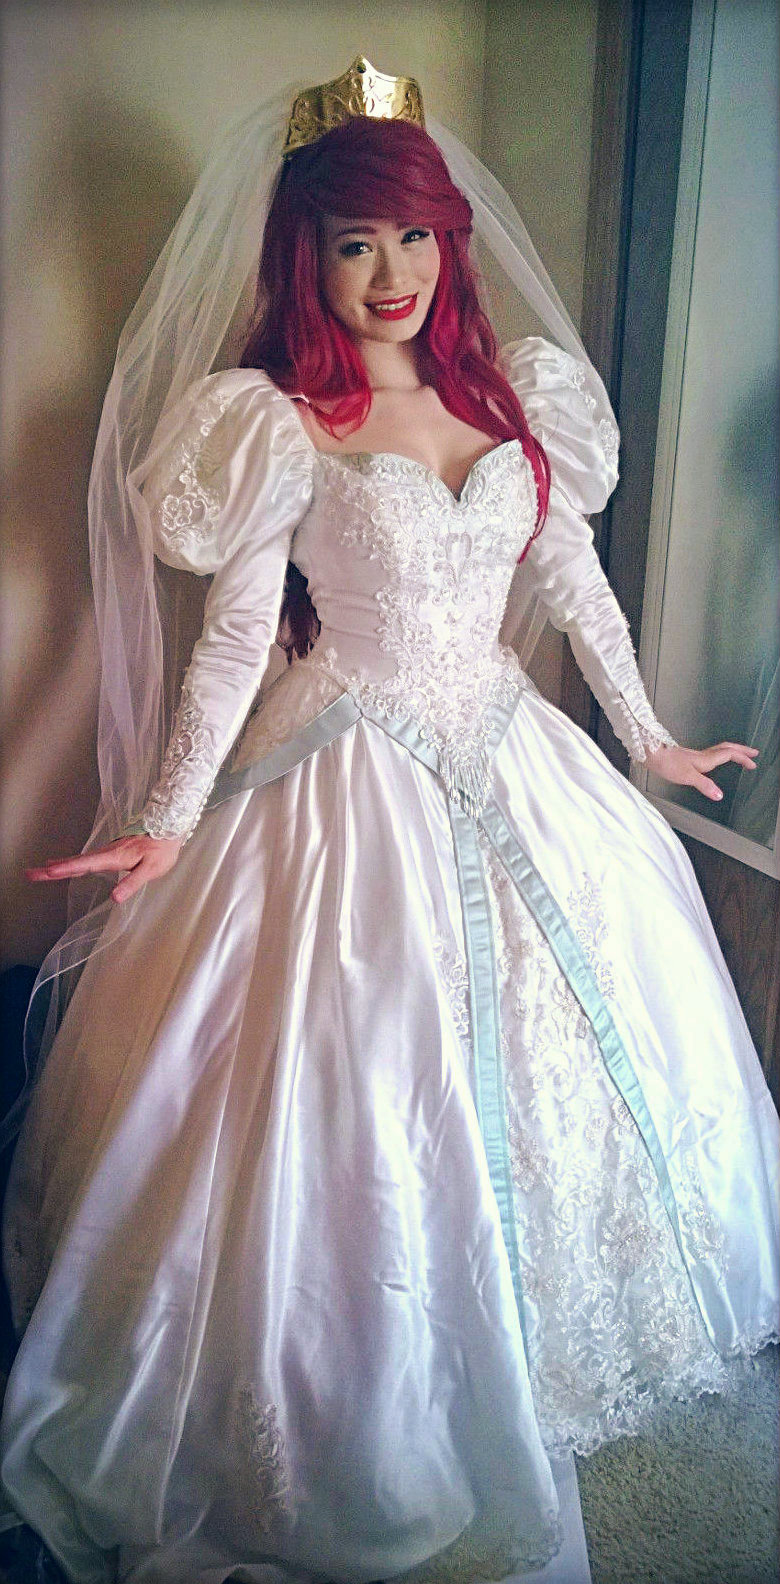 ariel wedding dress cosplay by mayumi loves sora on deviantart